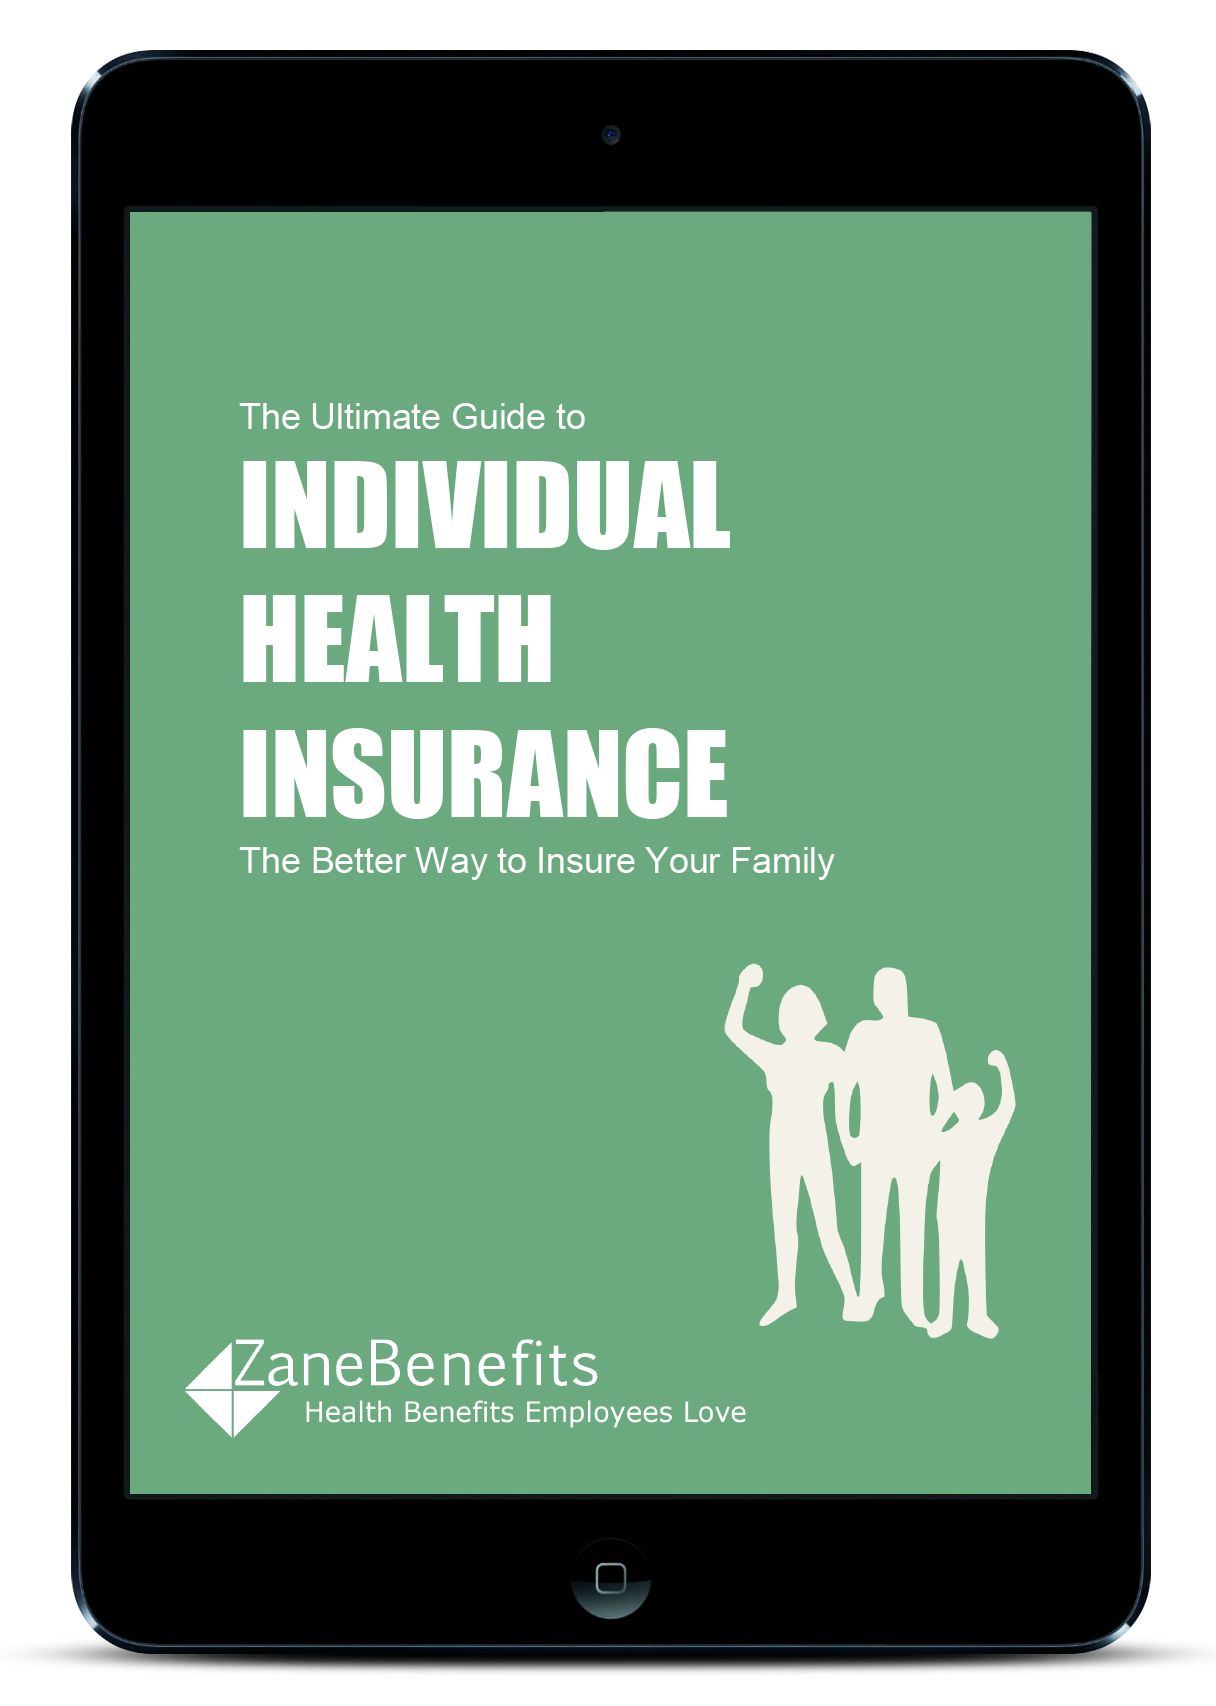 The Ultimate Guide to Individual Health Insurance